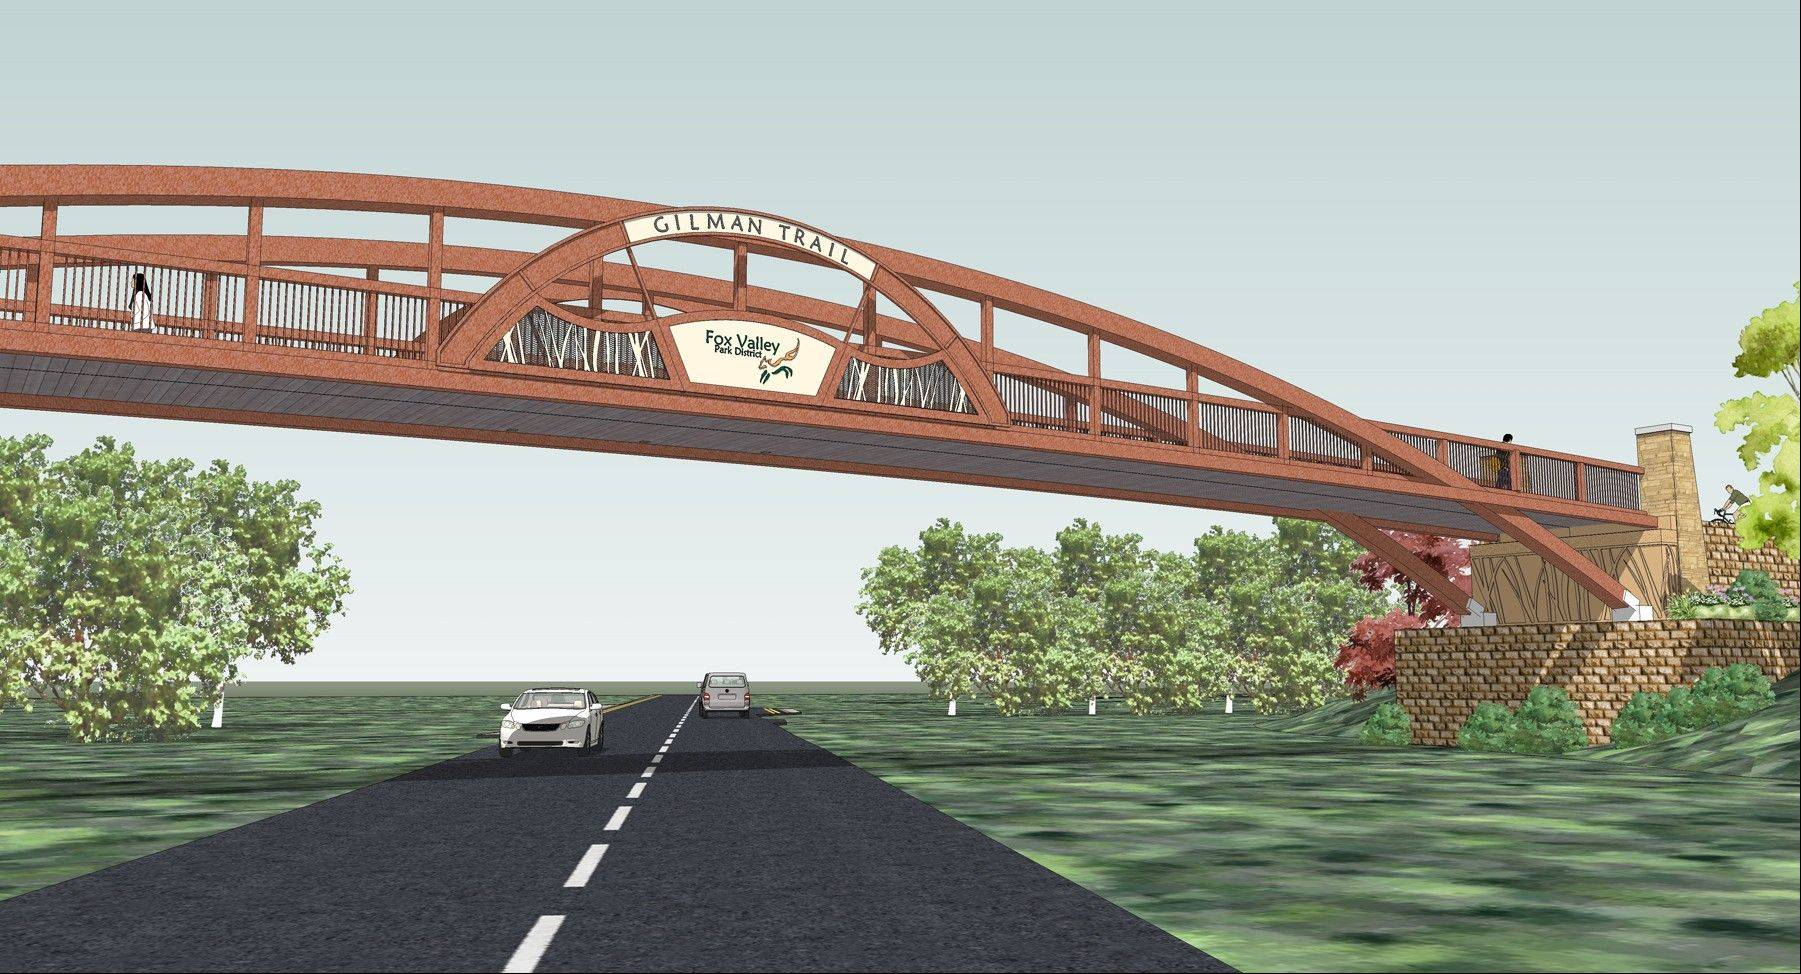 Once completed later in the year, the new Gilman Trail overpass at Galena Boulevard will bring added safety and convenience for trail users, according to Fox Valley Park District officials.